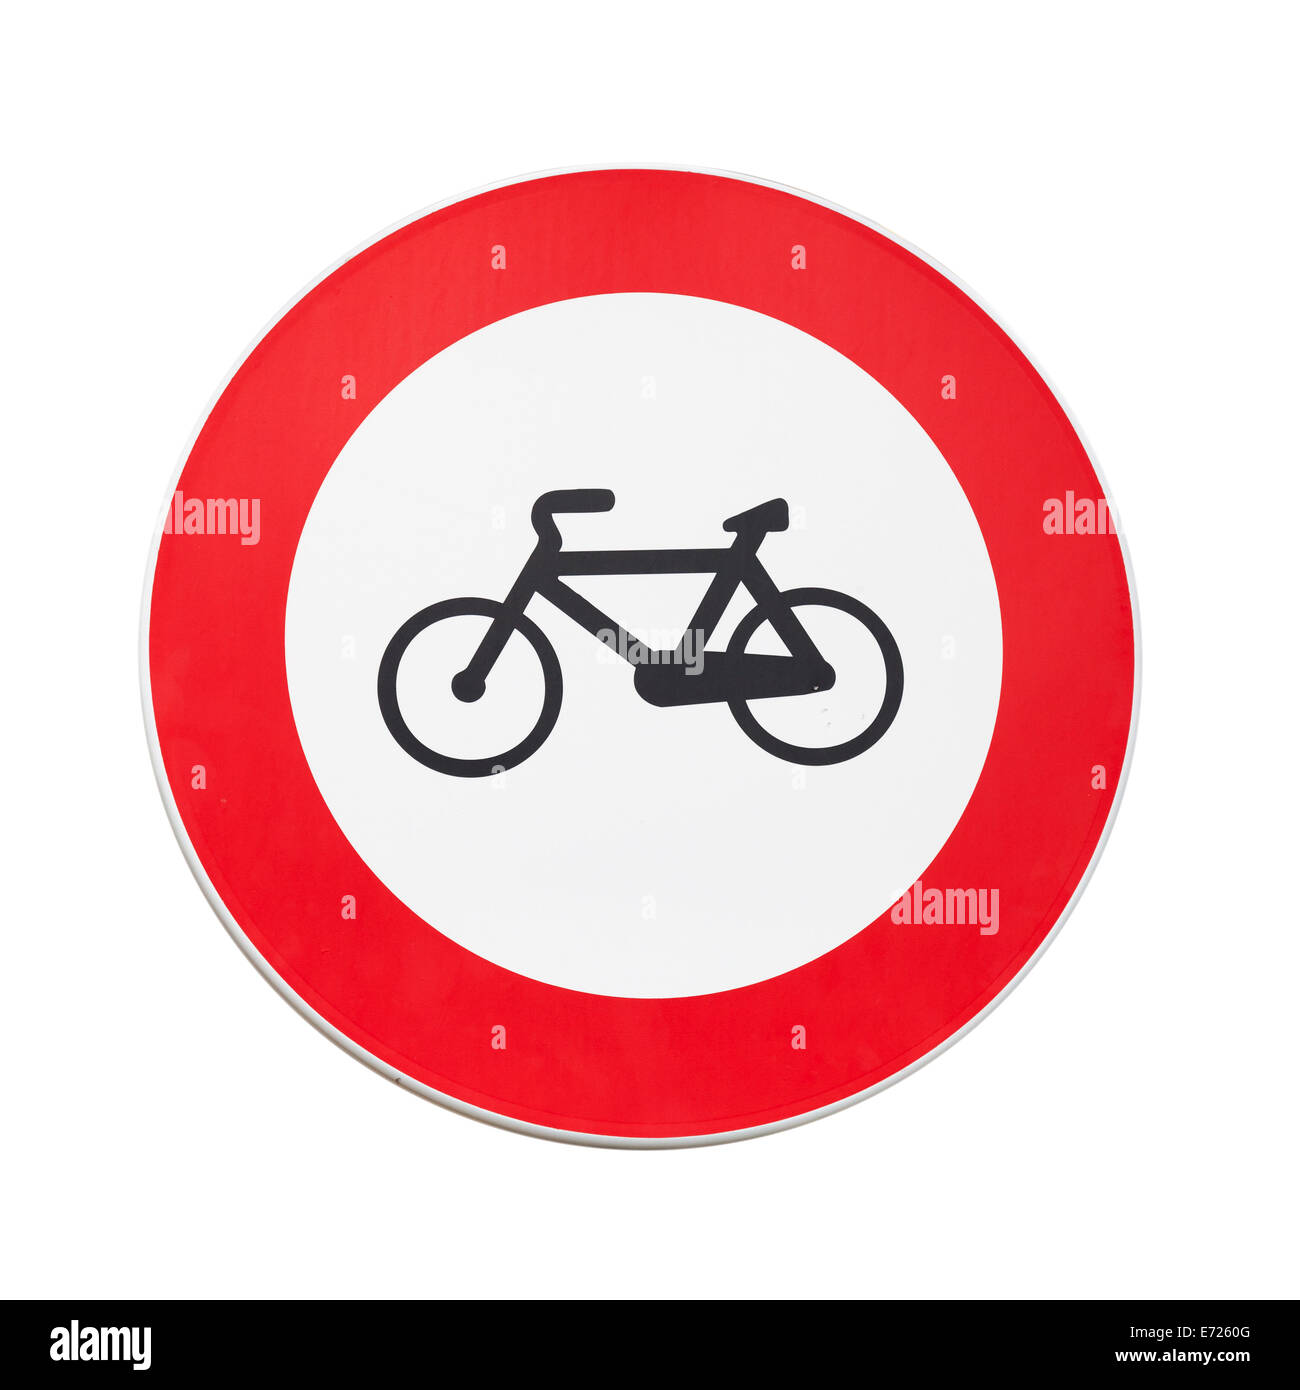 Bicycles traffic is prohibited, road sign isolated on white - Stock Image